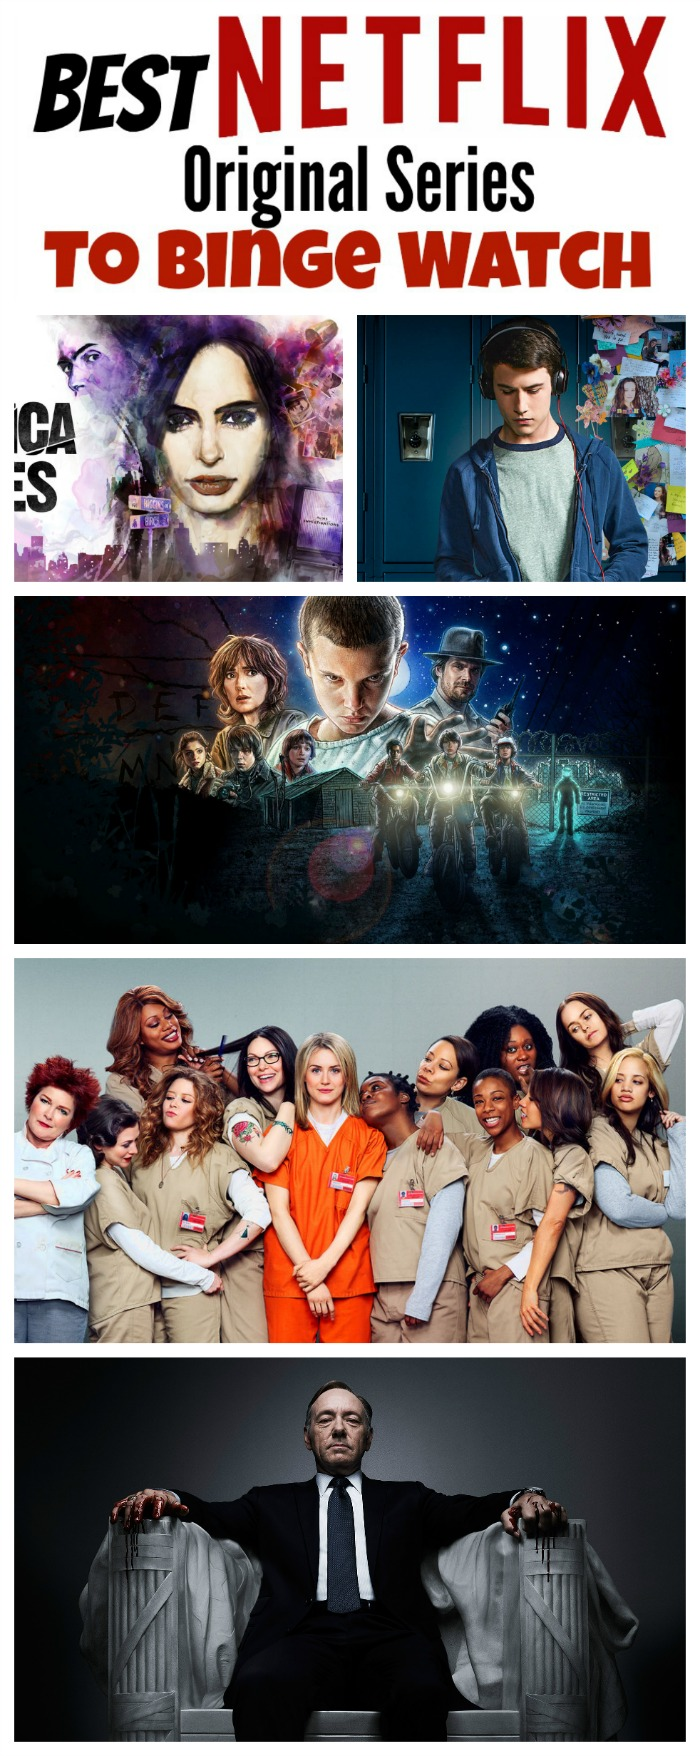 Best Netflix Original Series To Binge Watch